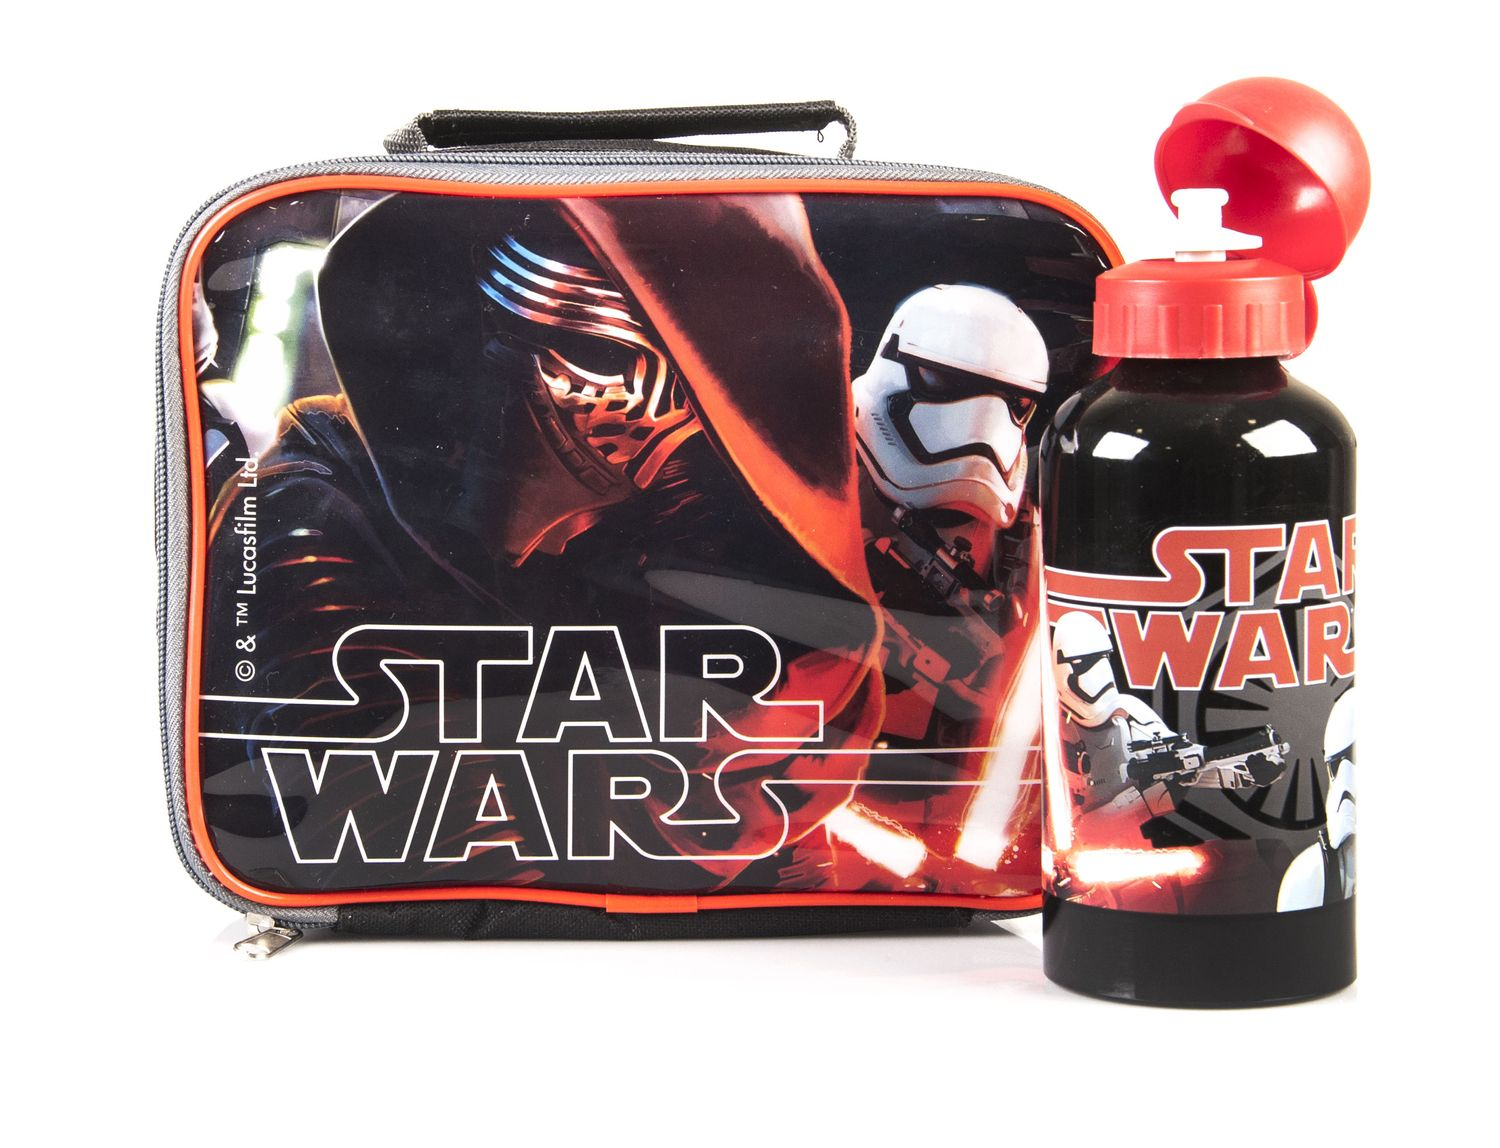 Star Wars Lunch Bag & Aluminium Bottle Set